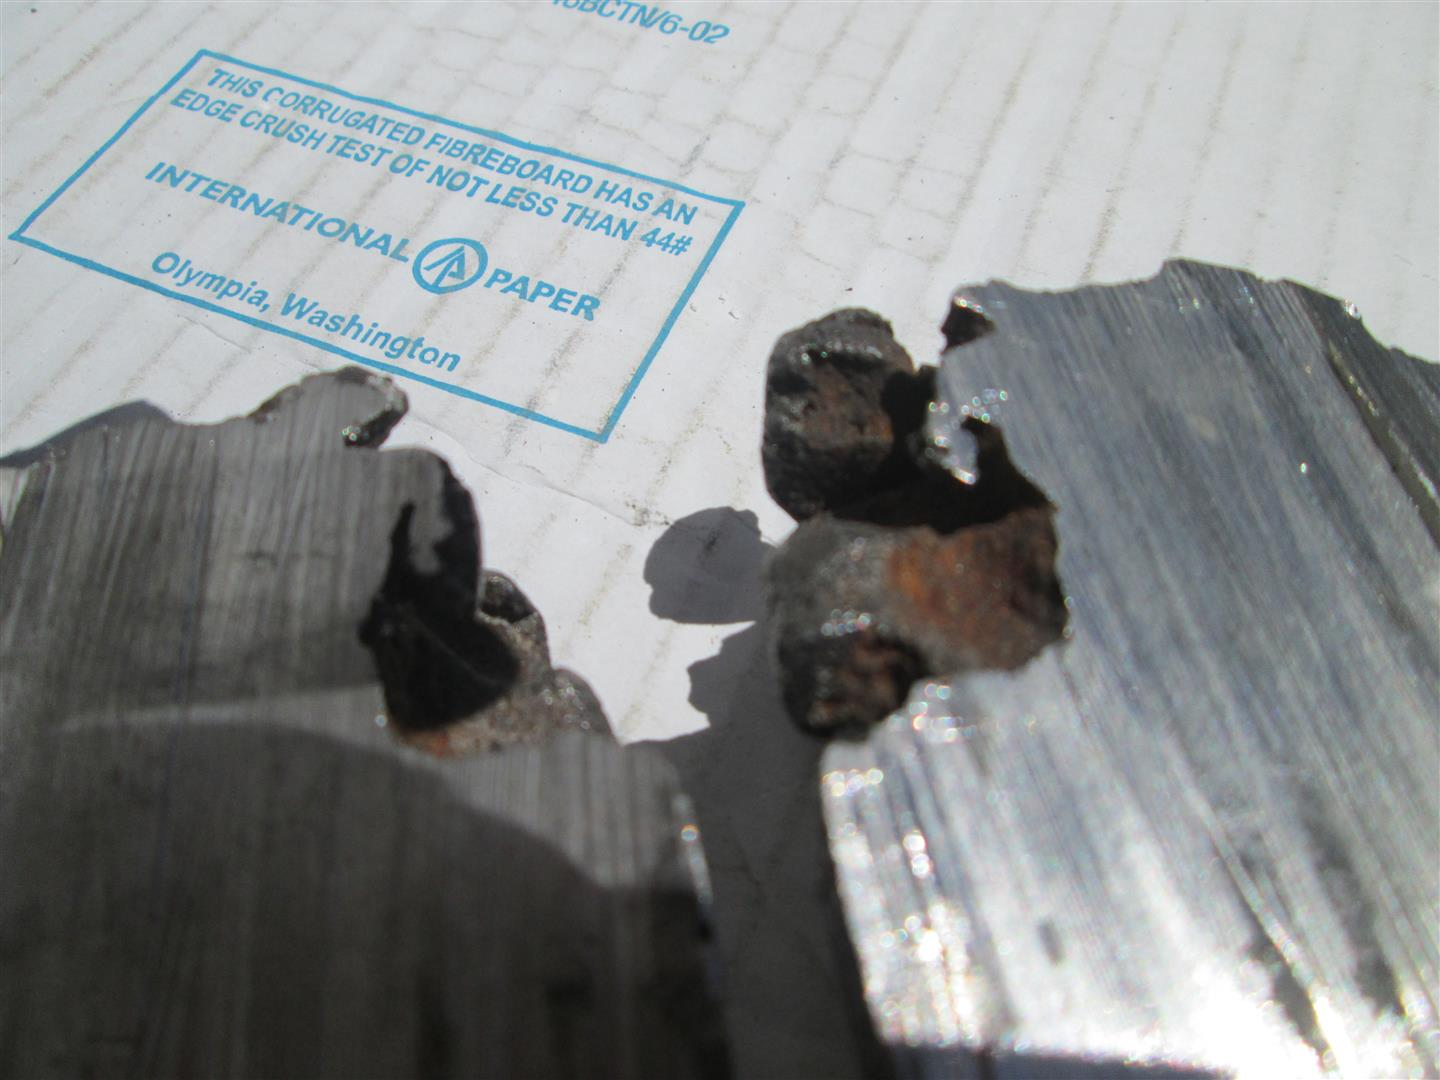 You are browsing images from the article: Hi Res Images showing Al-Wood Metal Sample